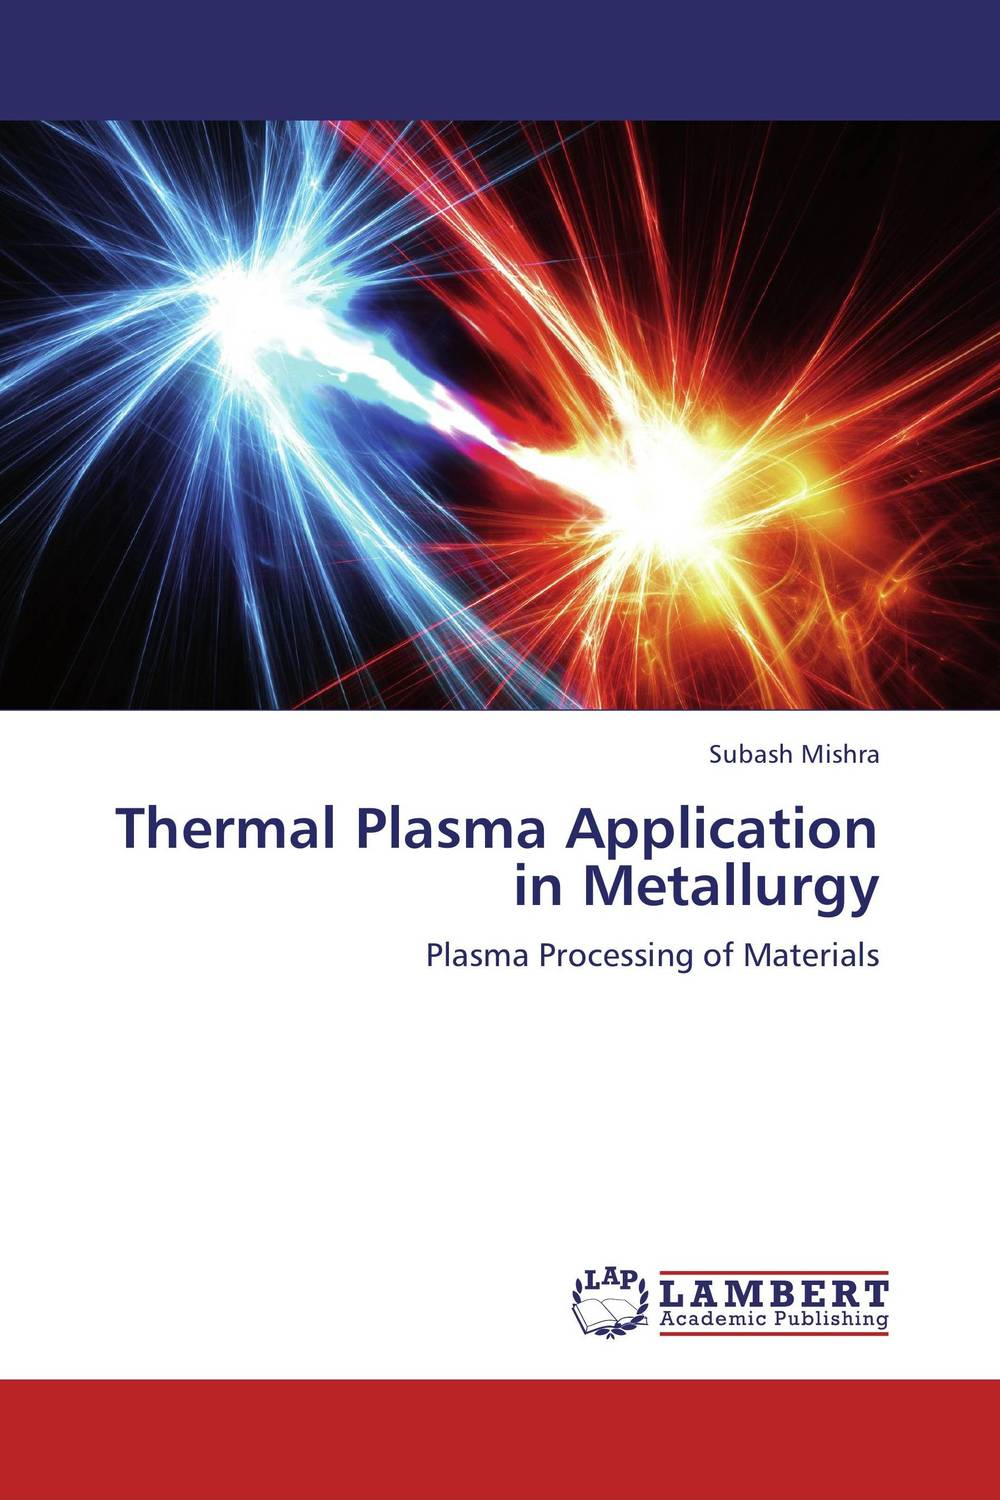 Thermal Plasma Application in Metallurgy an application of call in english subject